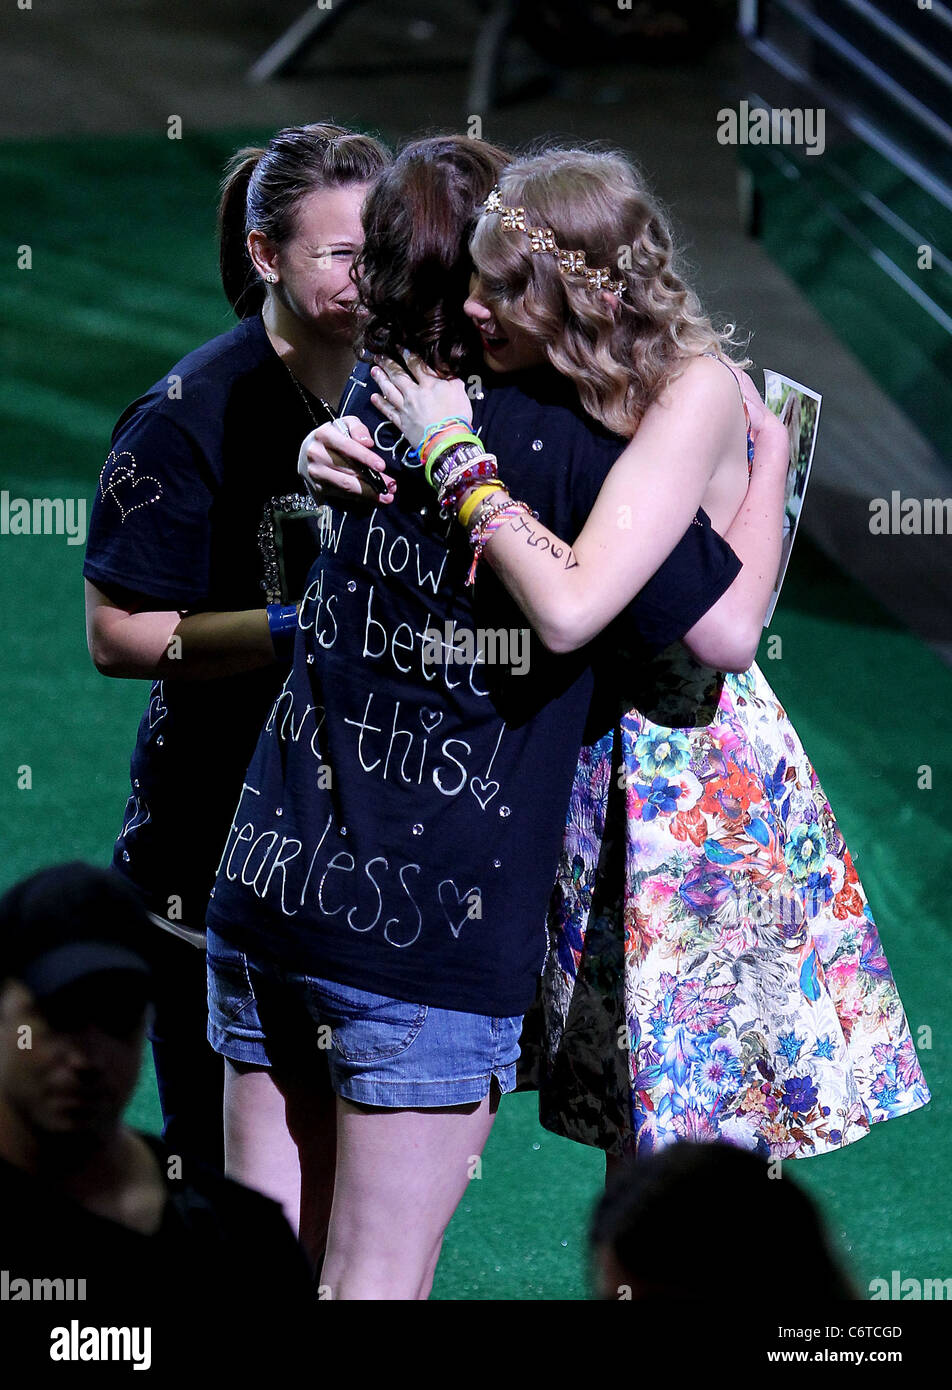 Taylor swift has a 13 hour meet greet with fans at the bridgestone taylor swift has a 13 hour meet greet with fans at the bridgestone arena during the 2010 cma music festival nashville m4hsunfo